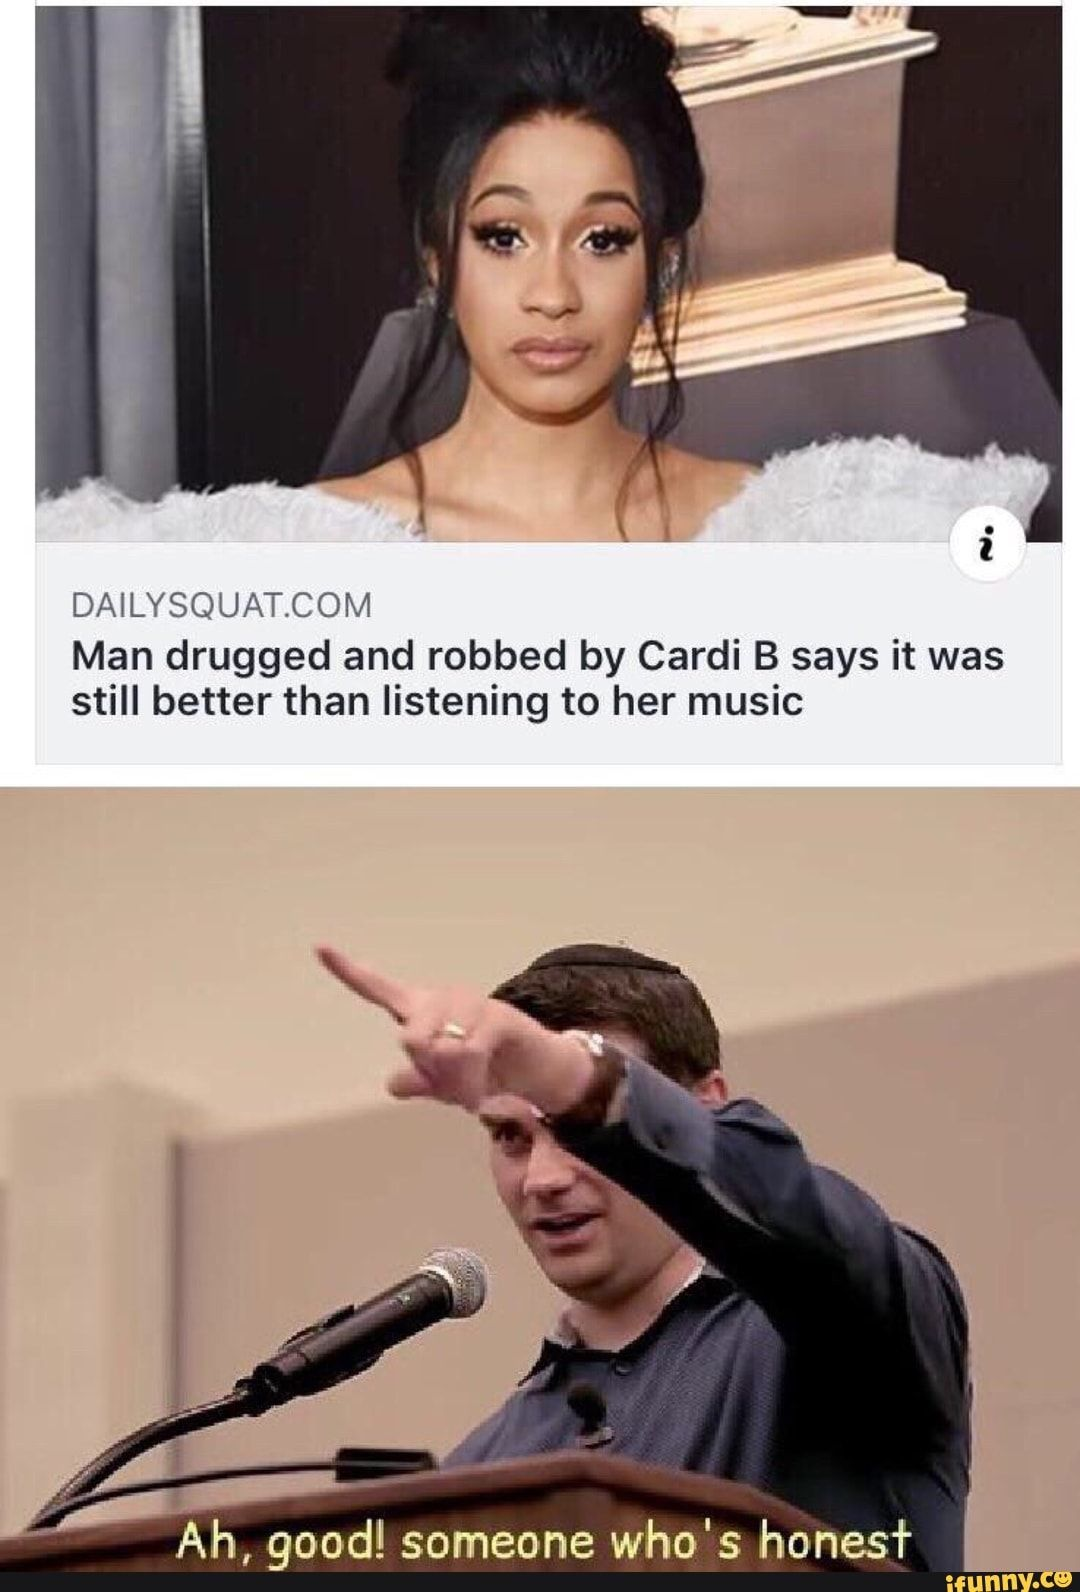 Dnlysquatcom Man Drugged And Robbed By Cardi B Says It Was Still Better Than Listening To Her Music H Good Someone Who S Honesf Ifunny Her Music Cardi B Memes Cardi B